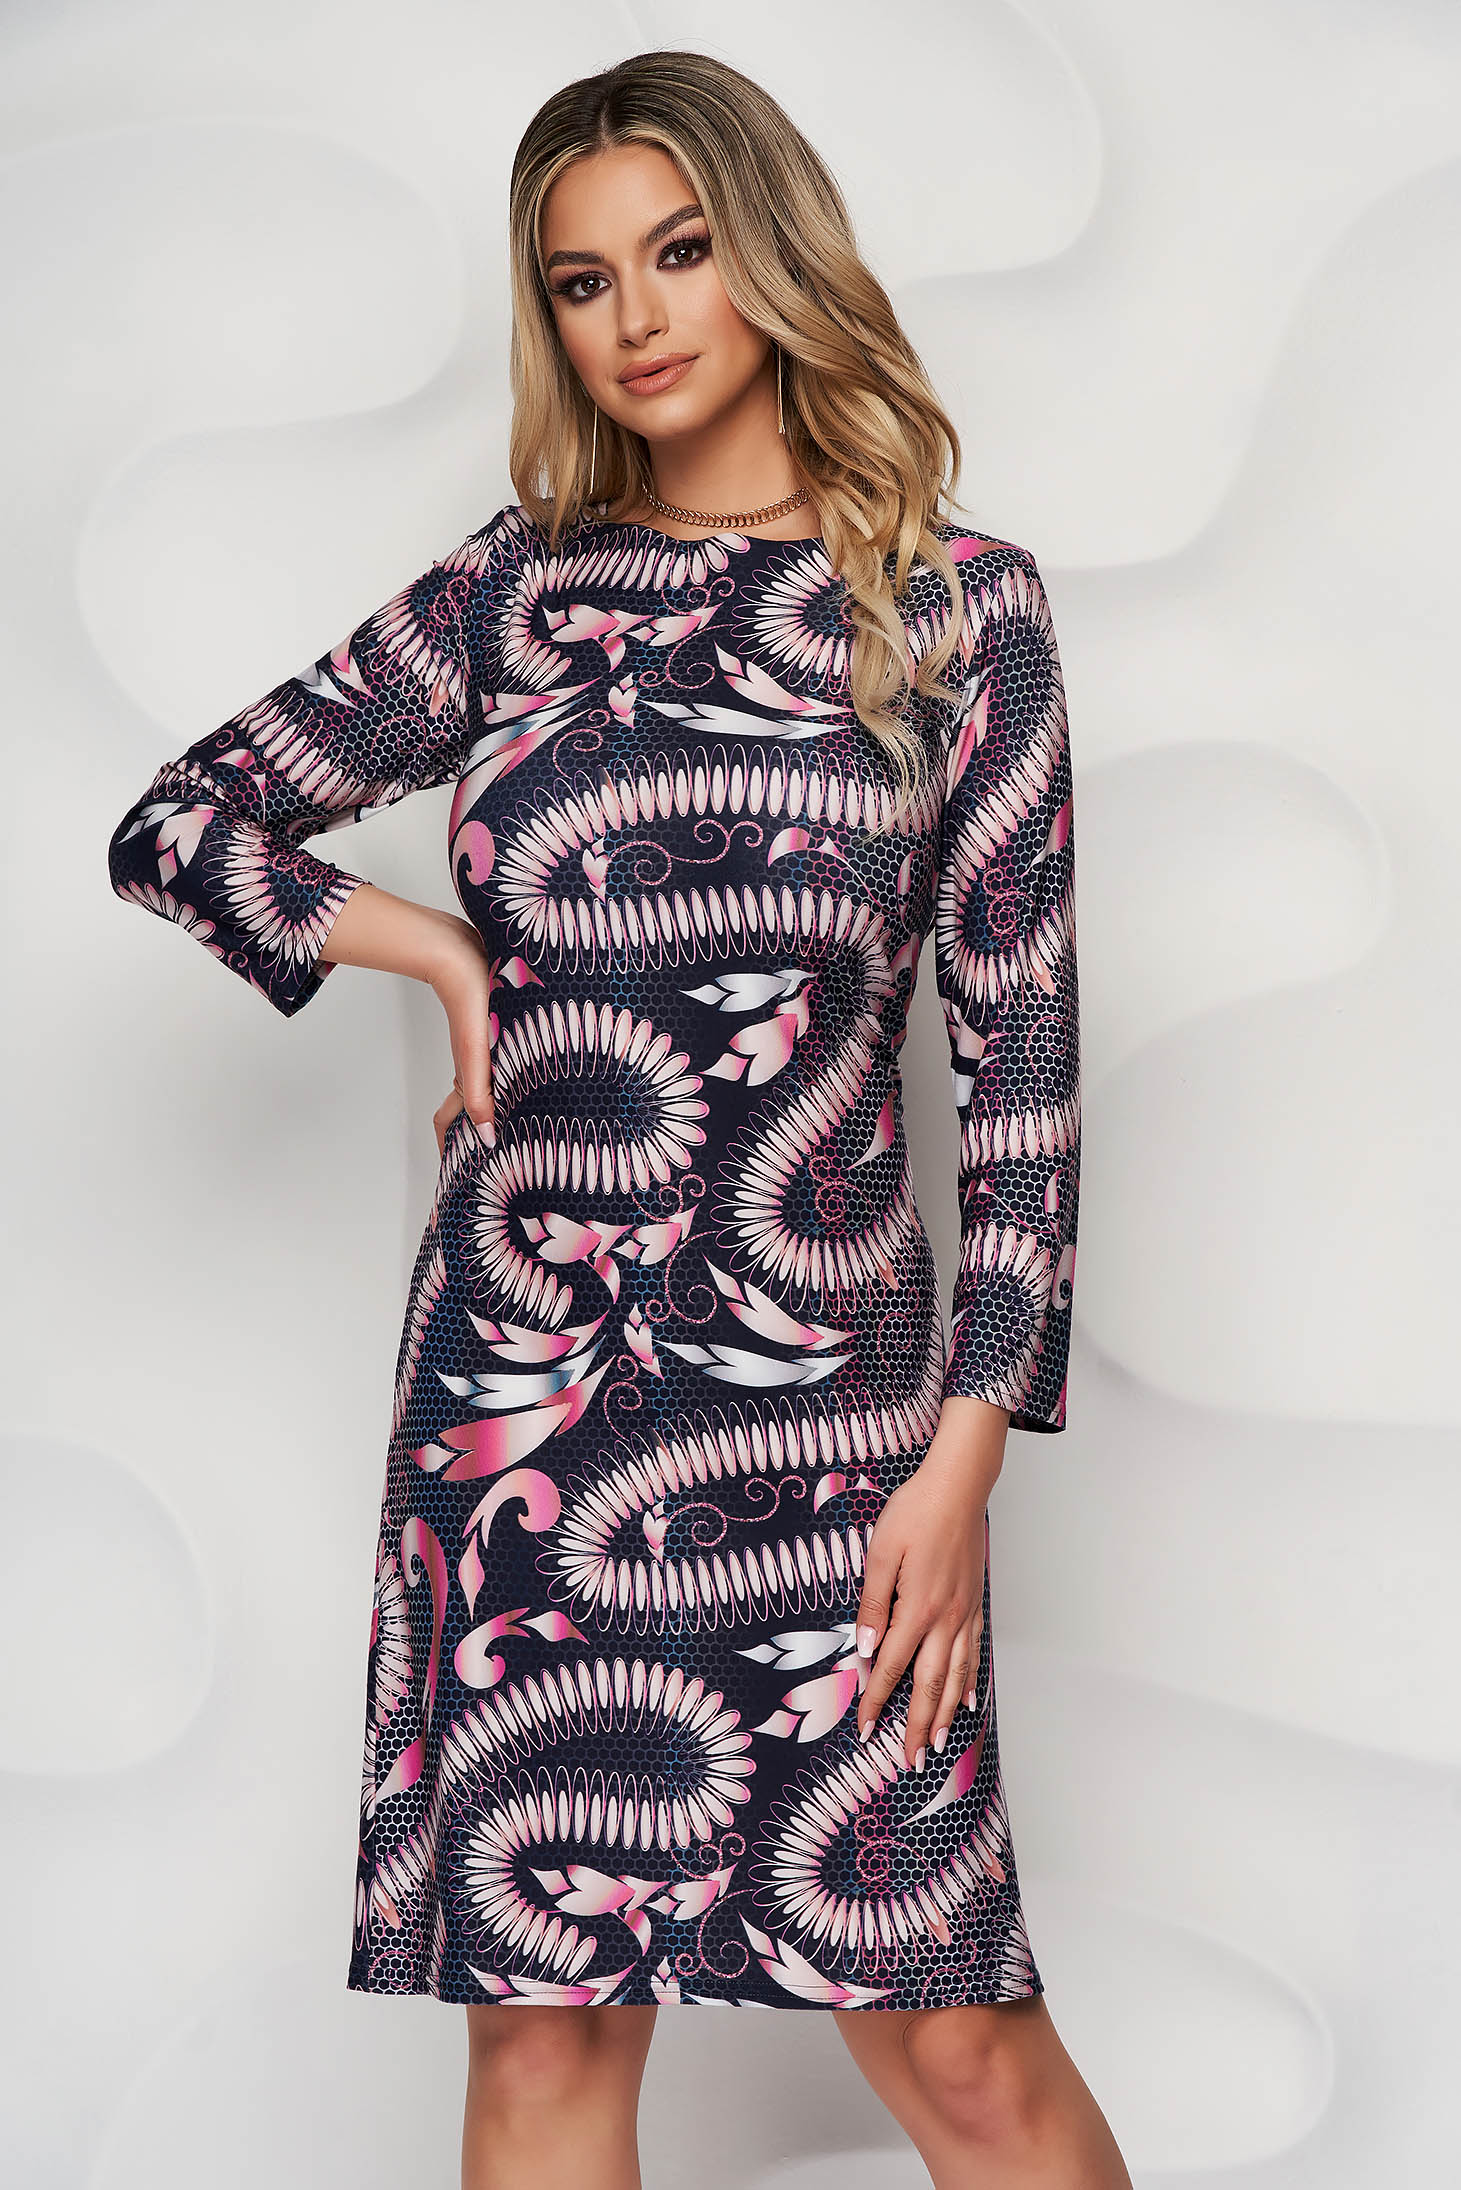 StarShinerS darkblue dress midi daily lycra straight with 3/4 sleeves